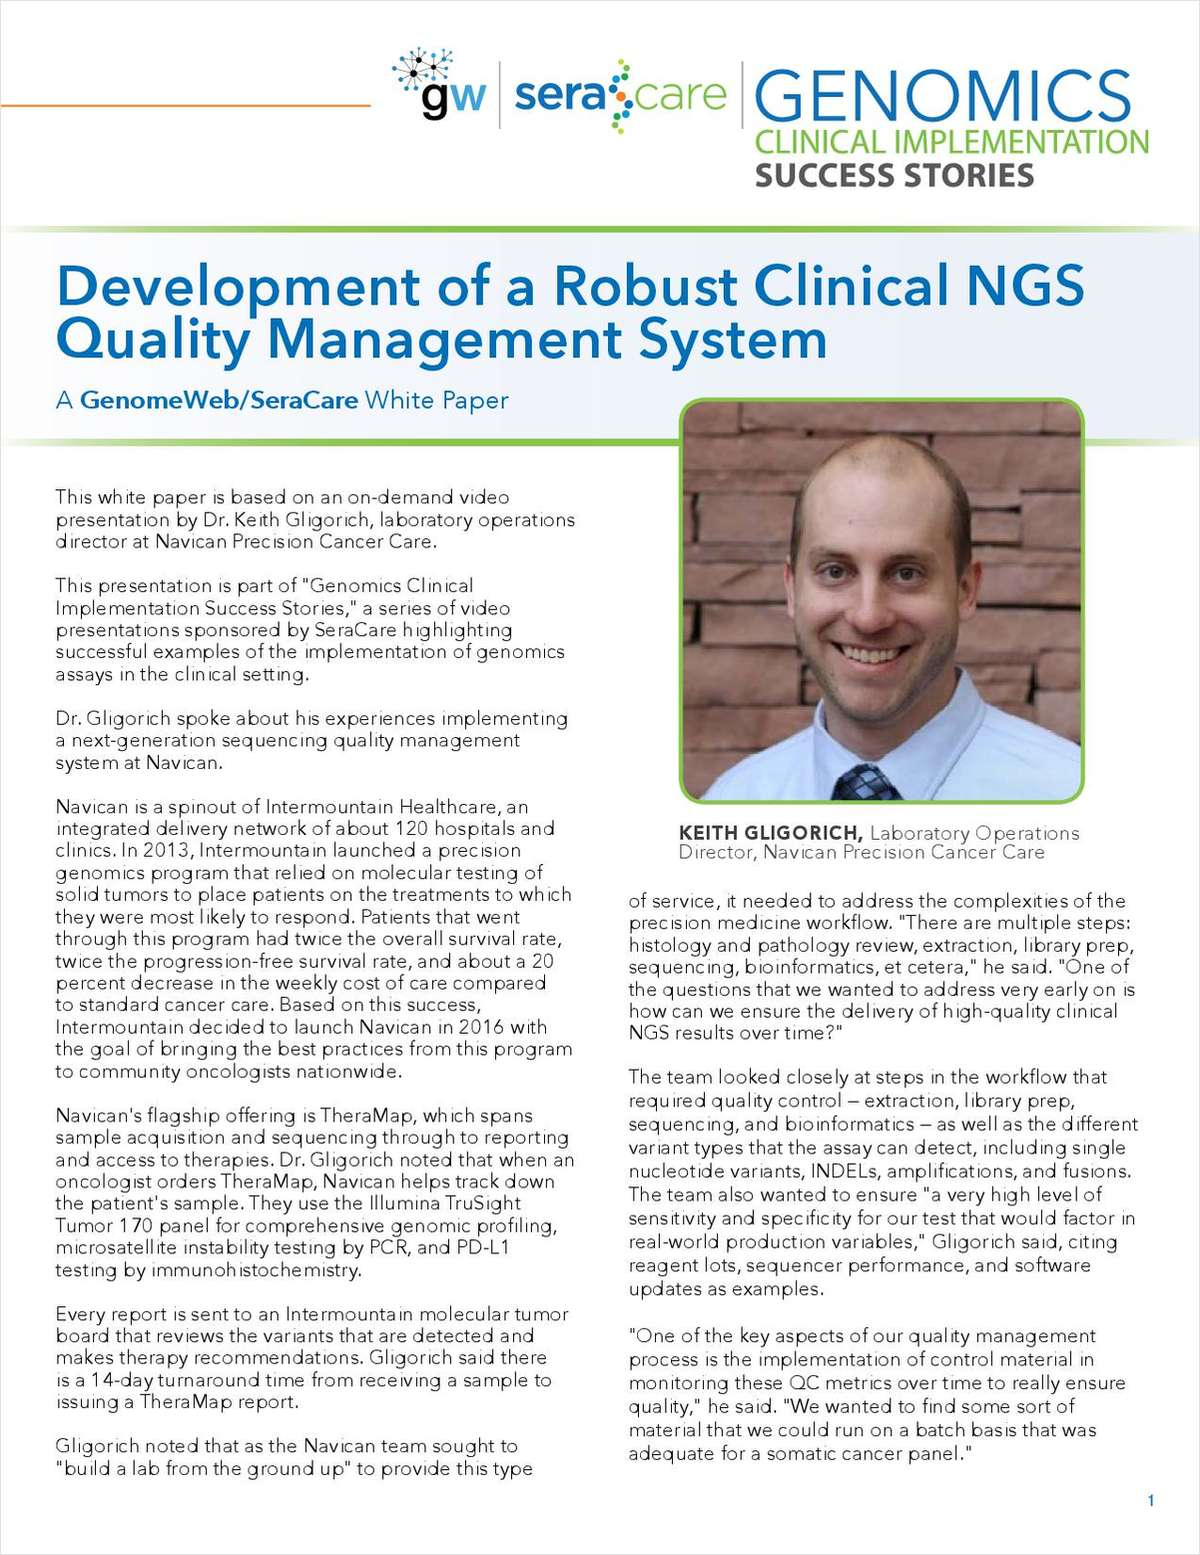 Genomics Clinical Implementation Success Stories: Development of a Robust Clinical NGS Quality Management System White Paper